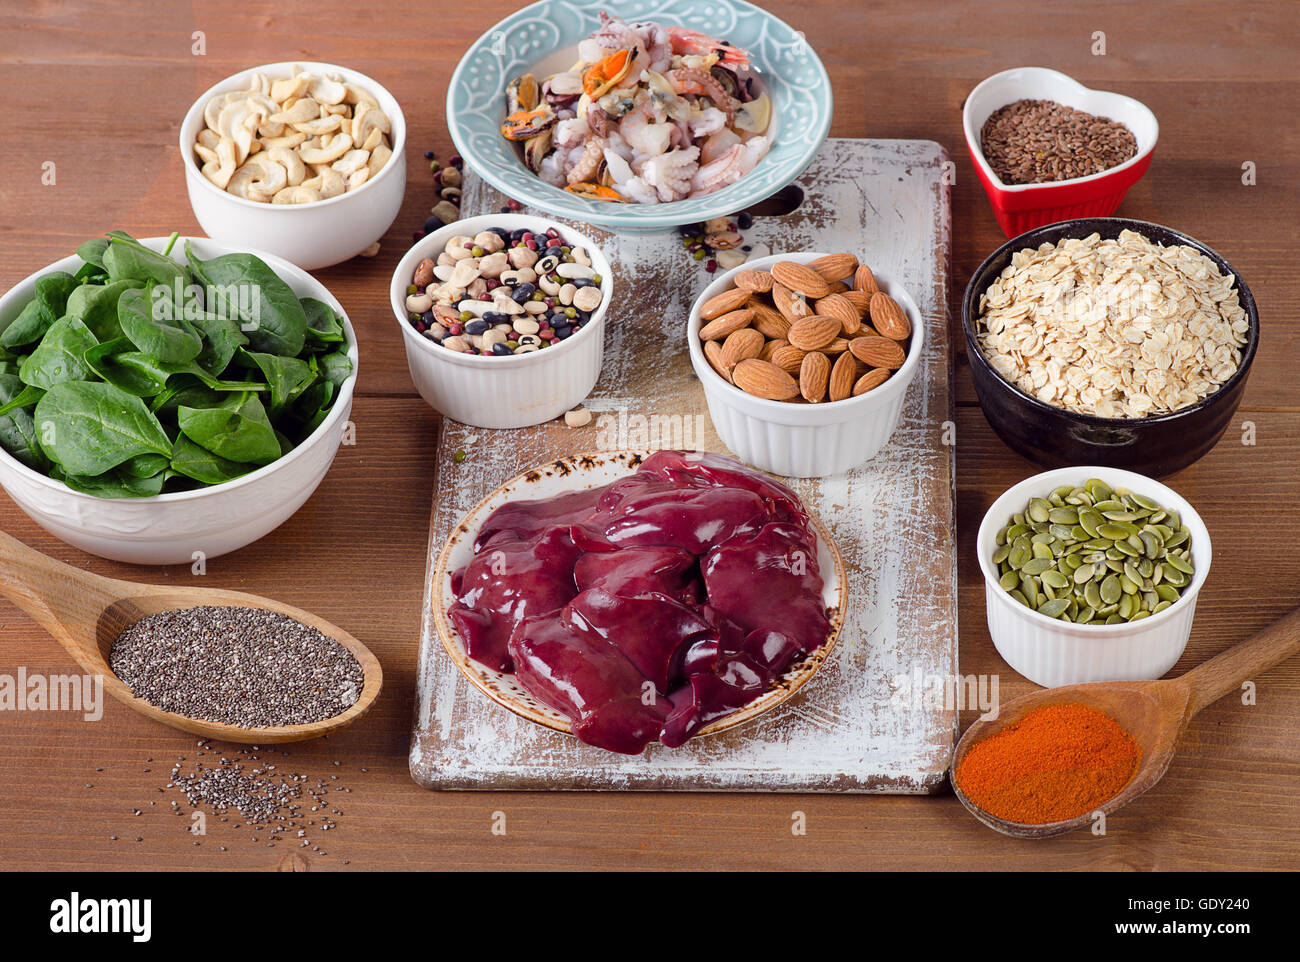 Manganese rich foods. Healthy eating - Stock Image